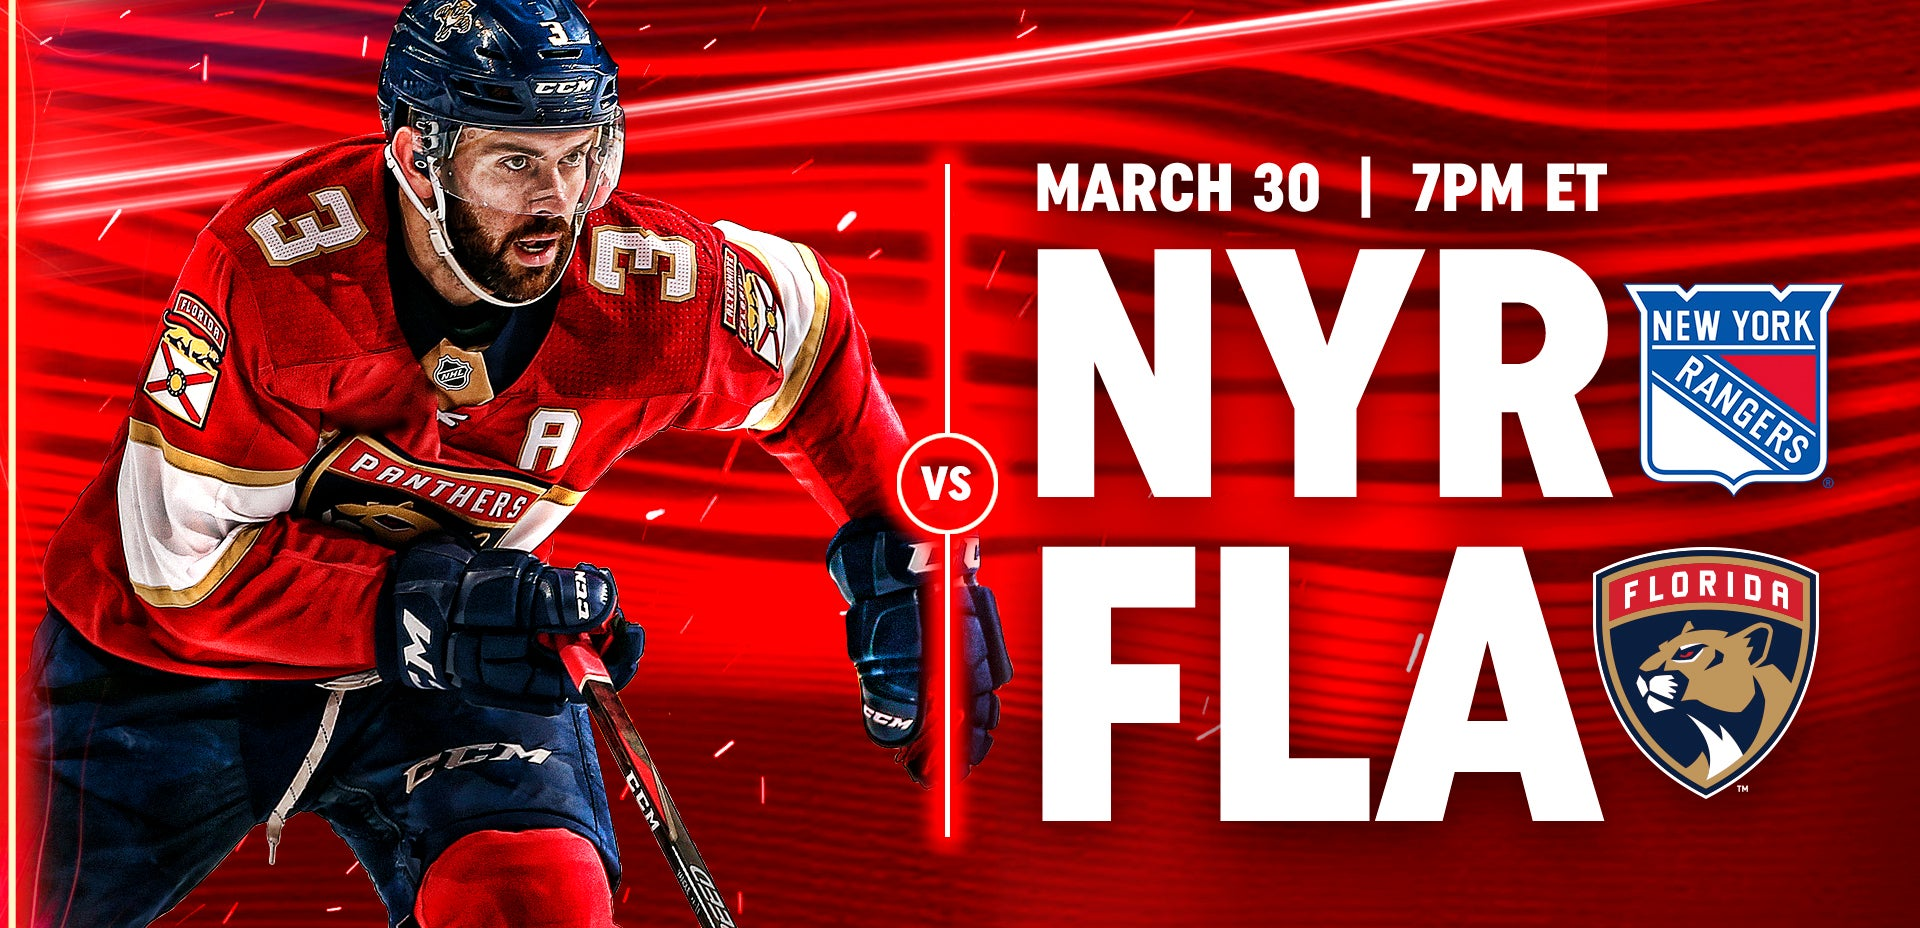 Rangers vs Panthers